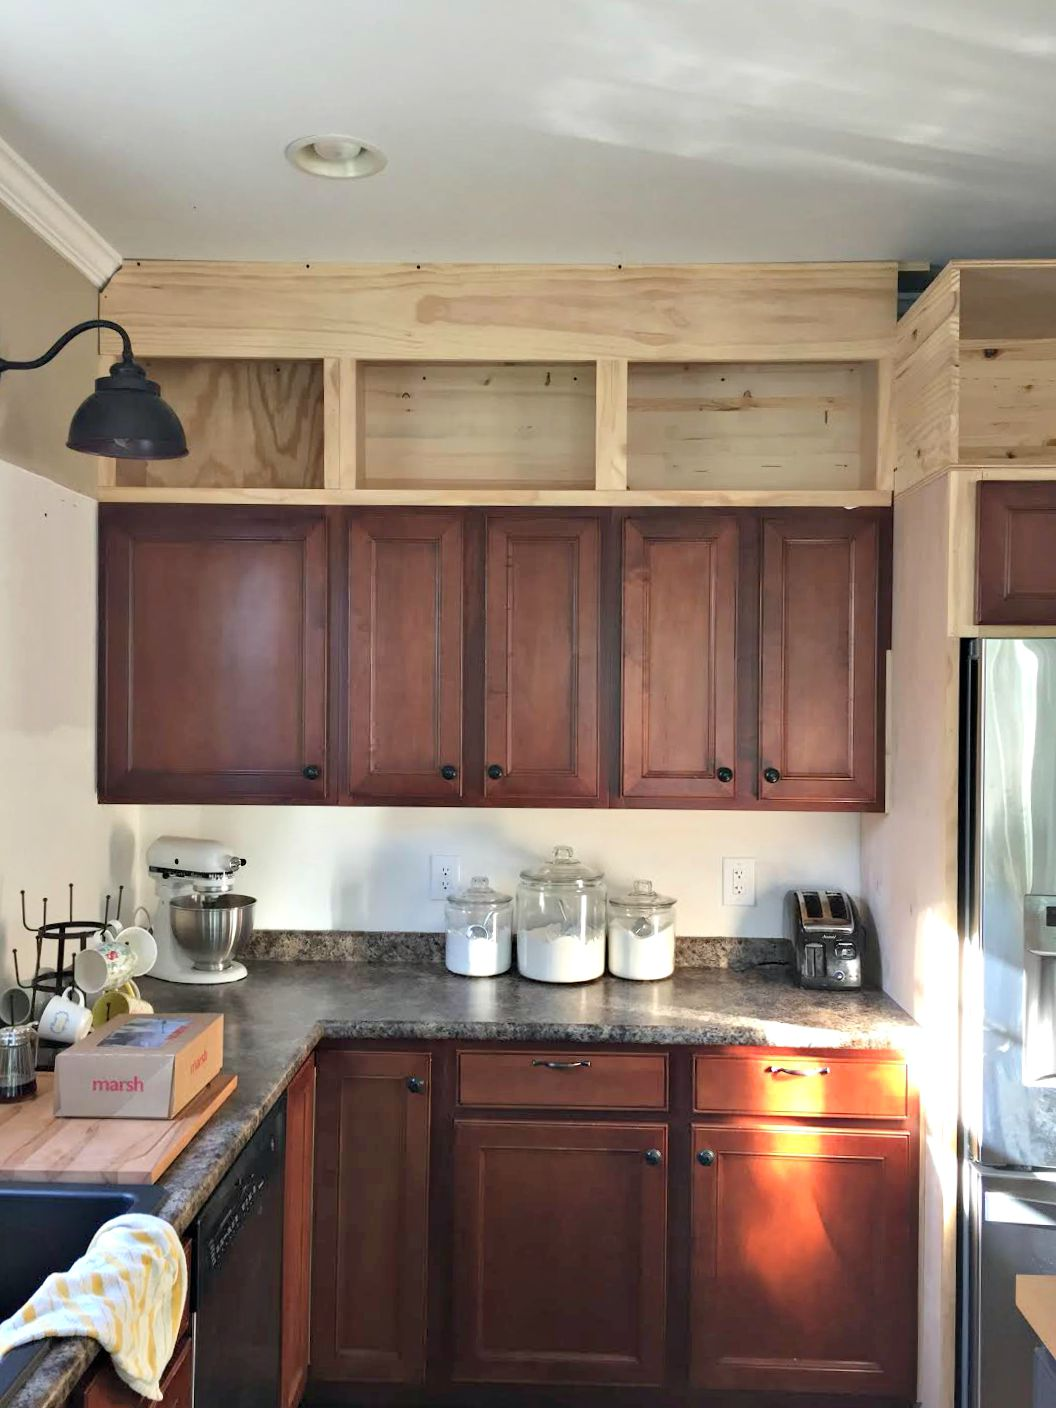 Kitchen Cabinets To Ceiling With Glass Building Cabinets Up To The Ceiling From Thrifty Decor Chick